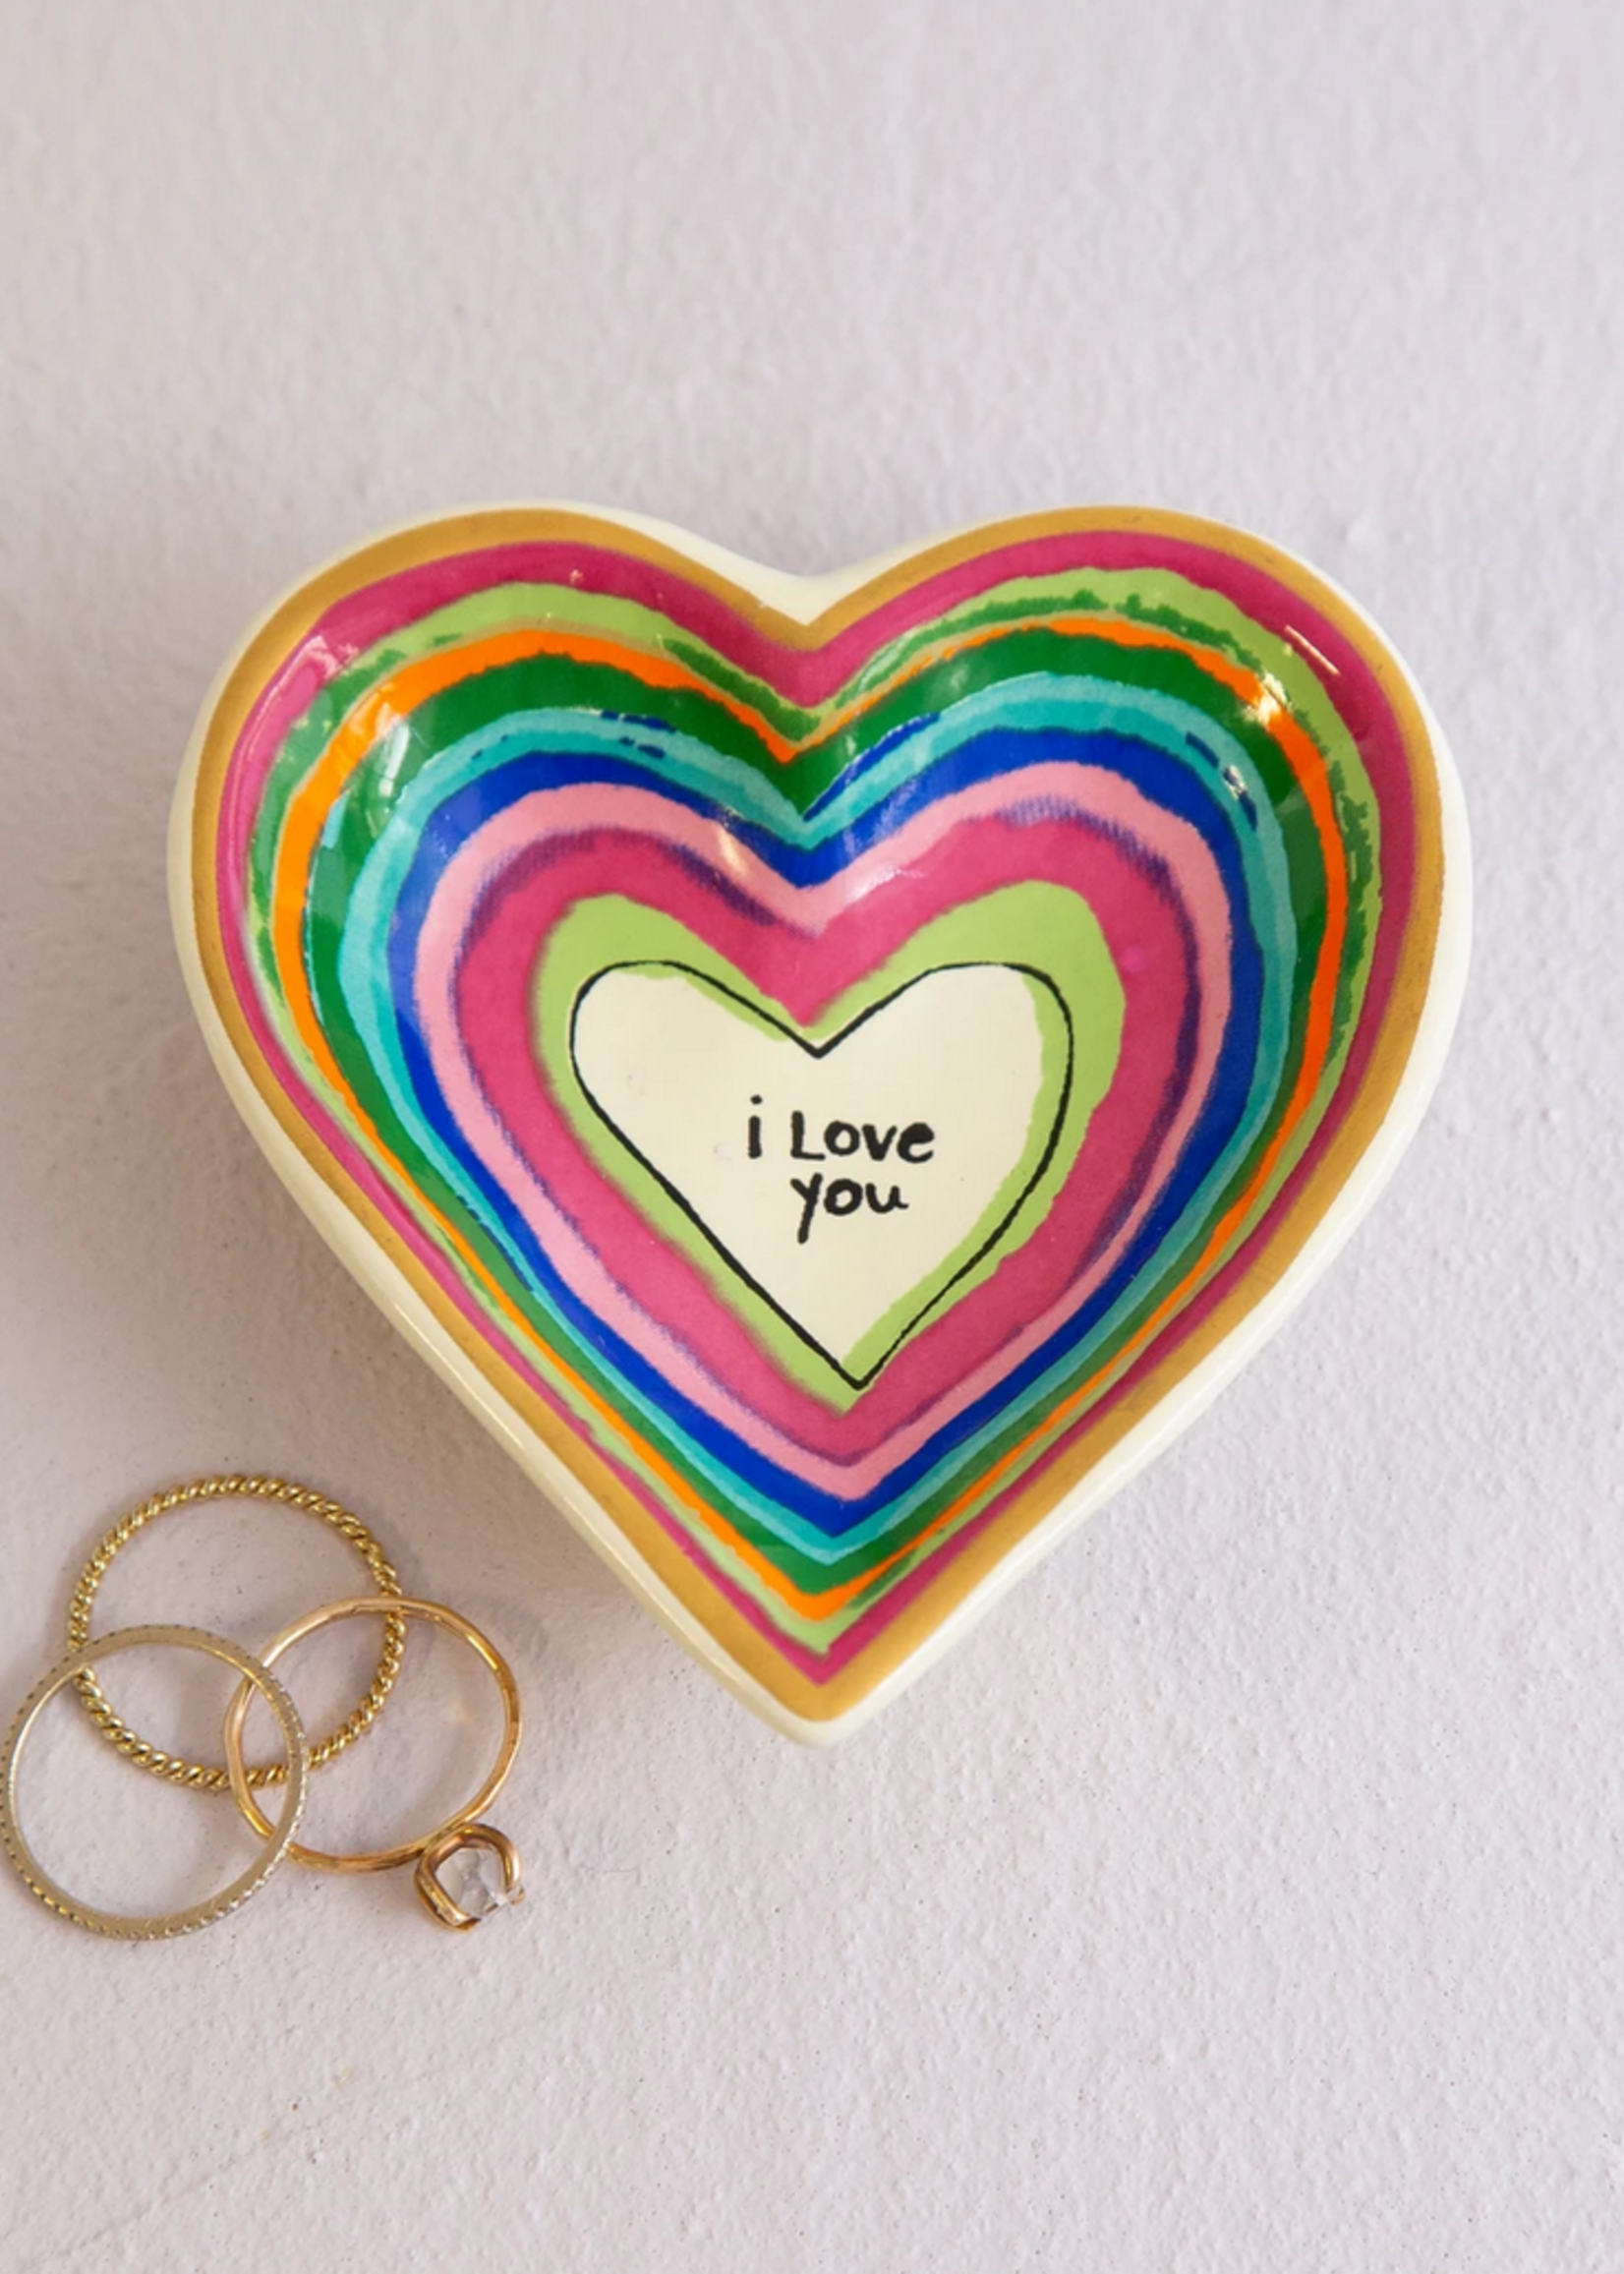 natural life i love you heart trinket dish